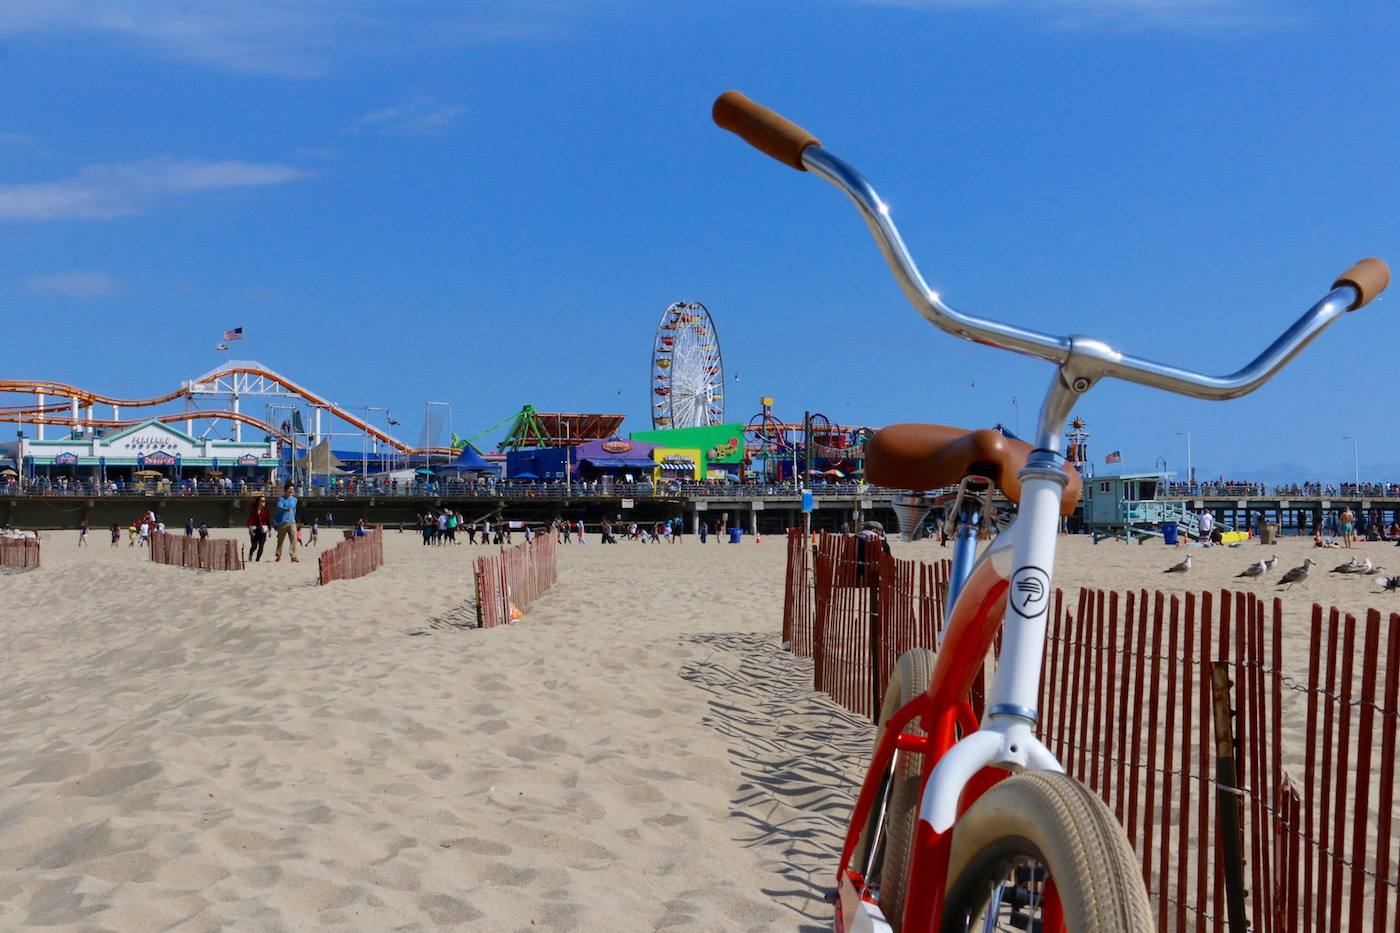 Biking The Strand at Santa Monica Pier